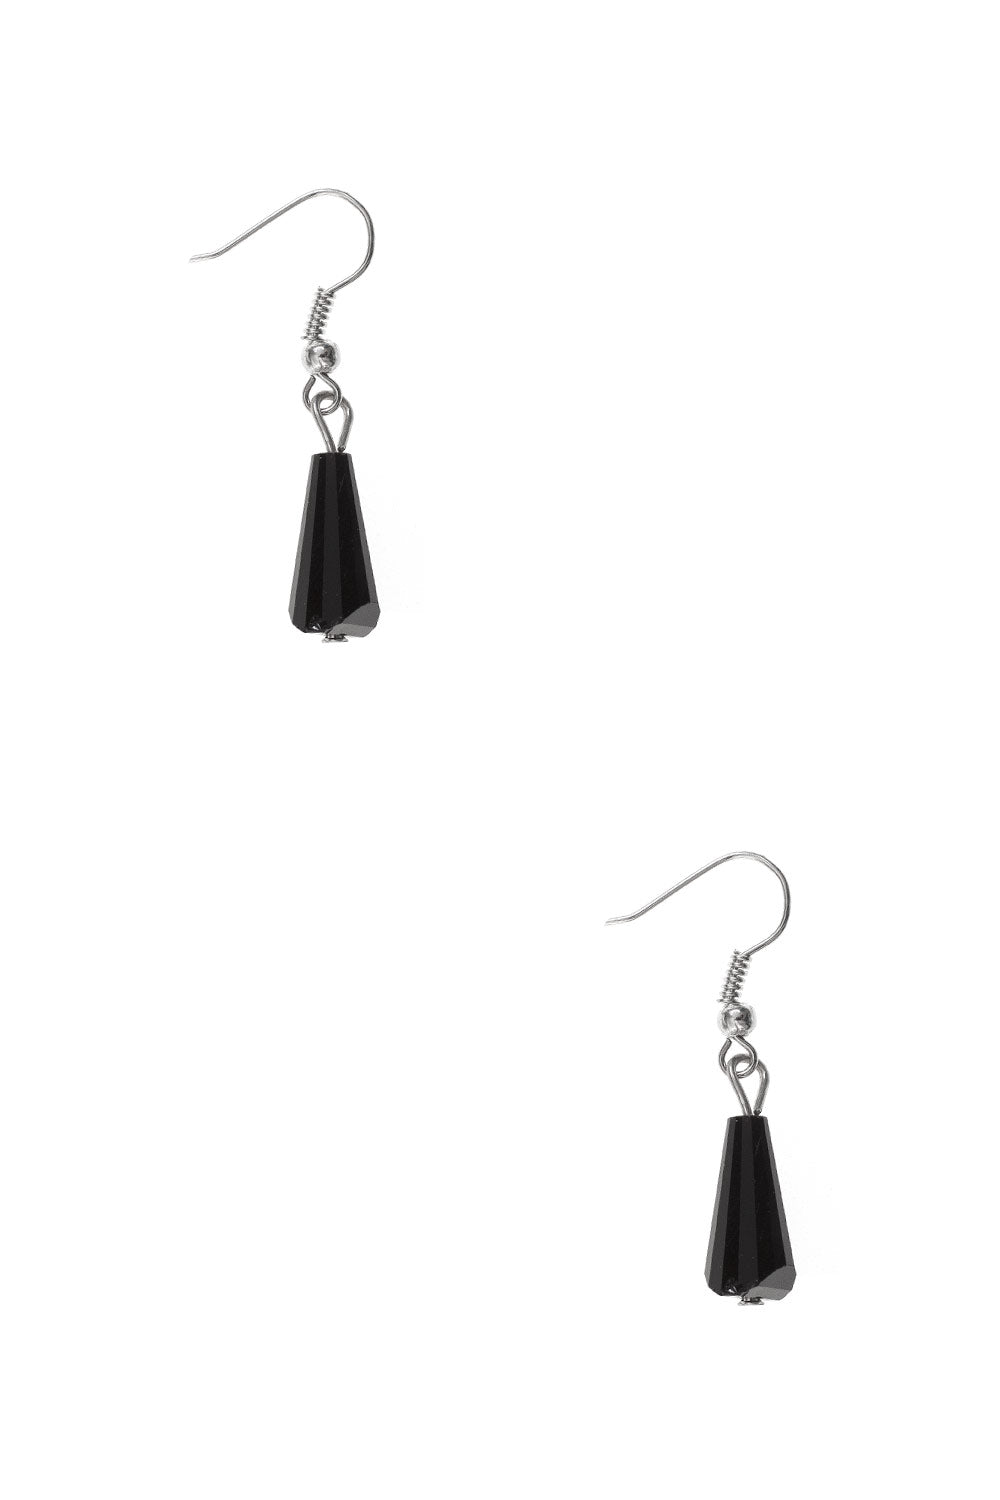 Type 4 Triad Earrings